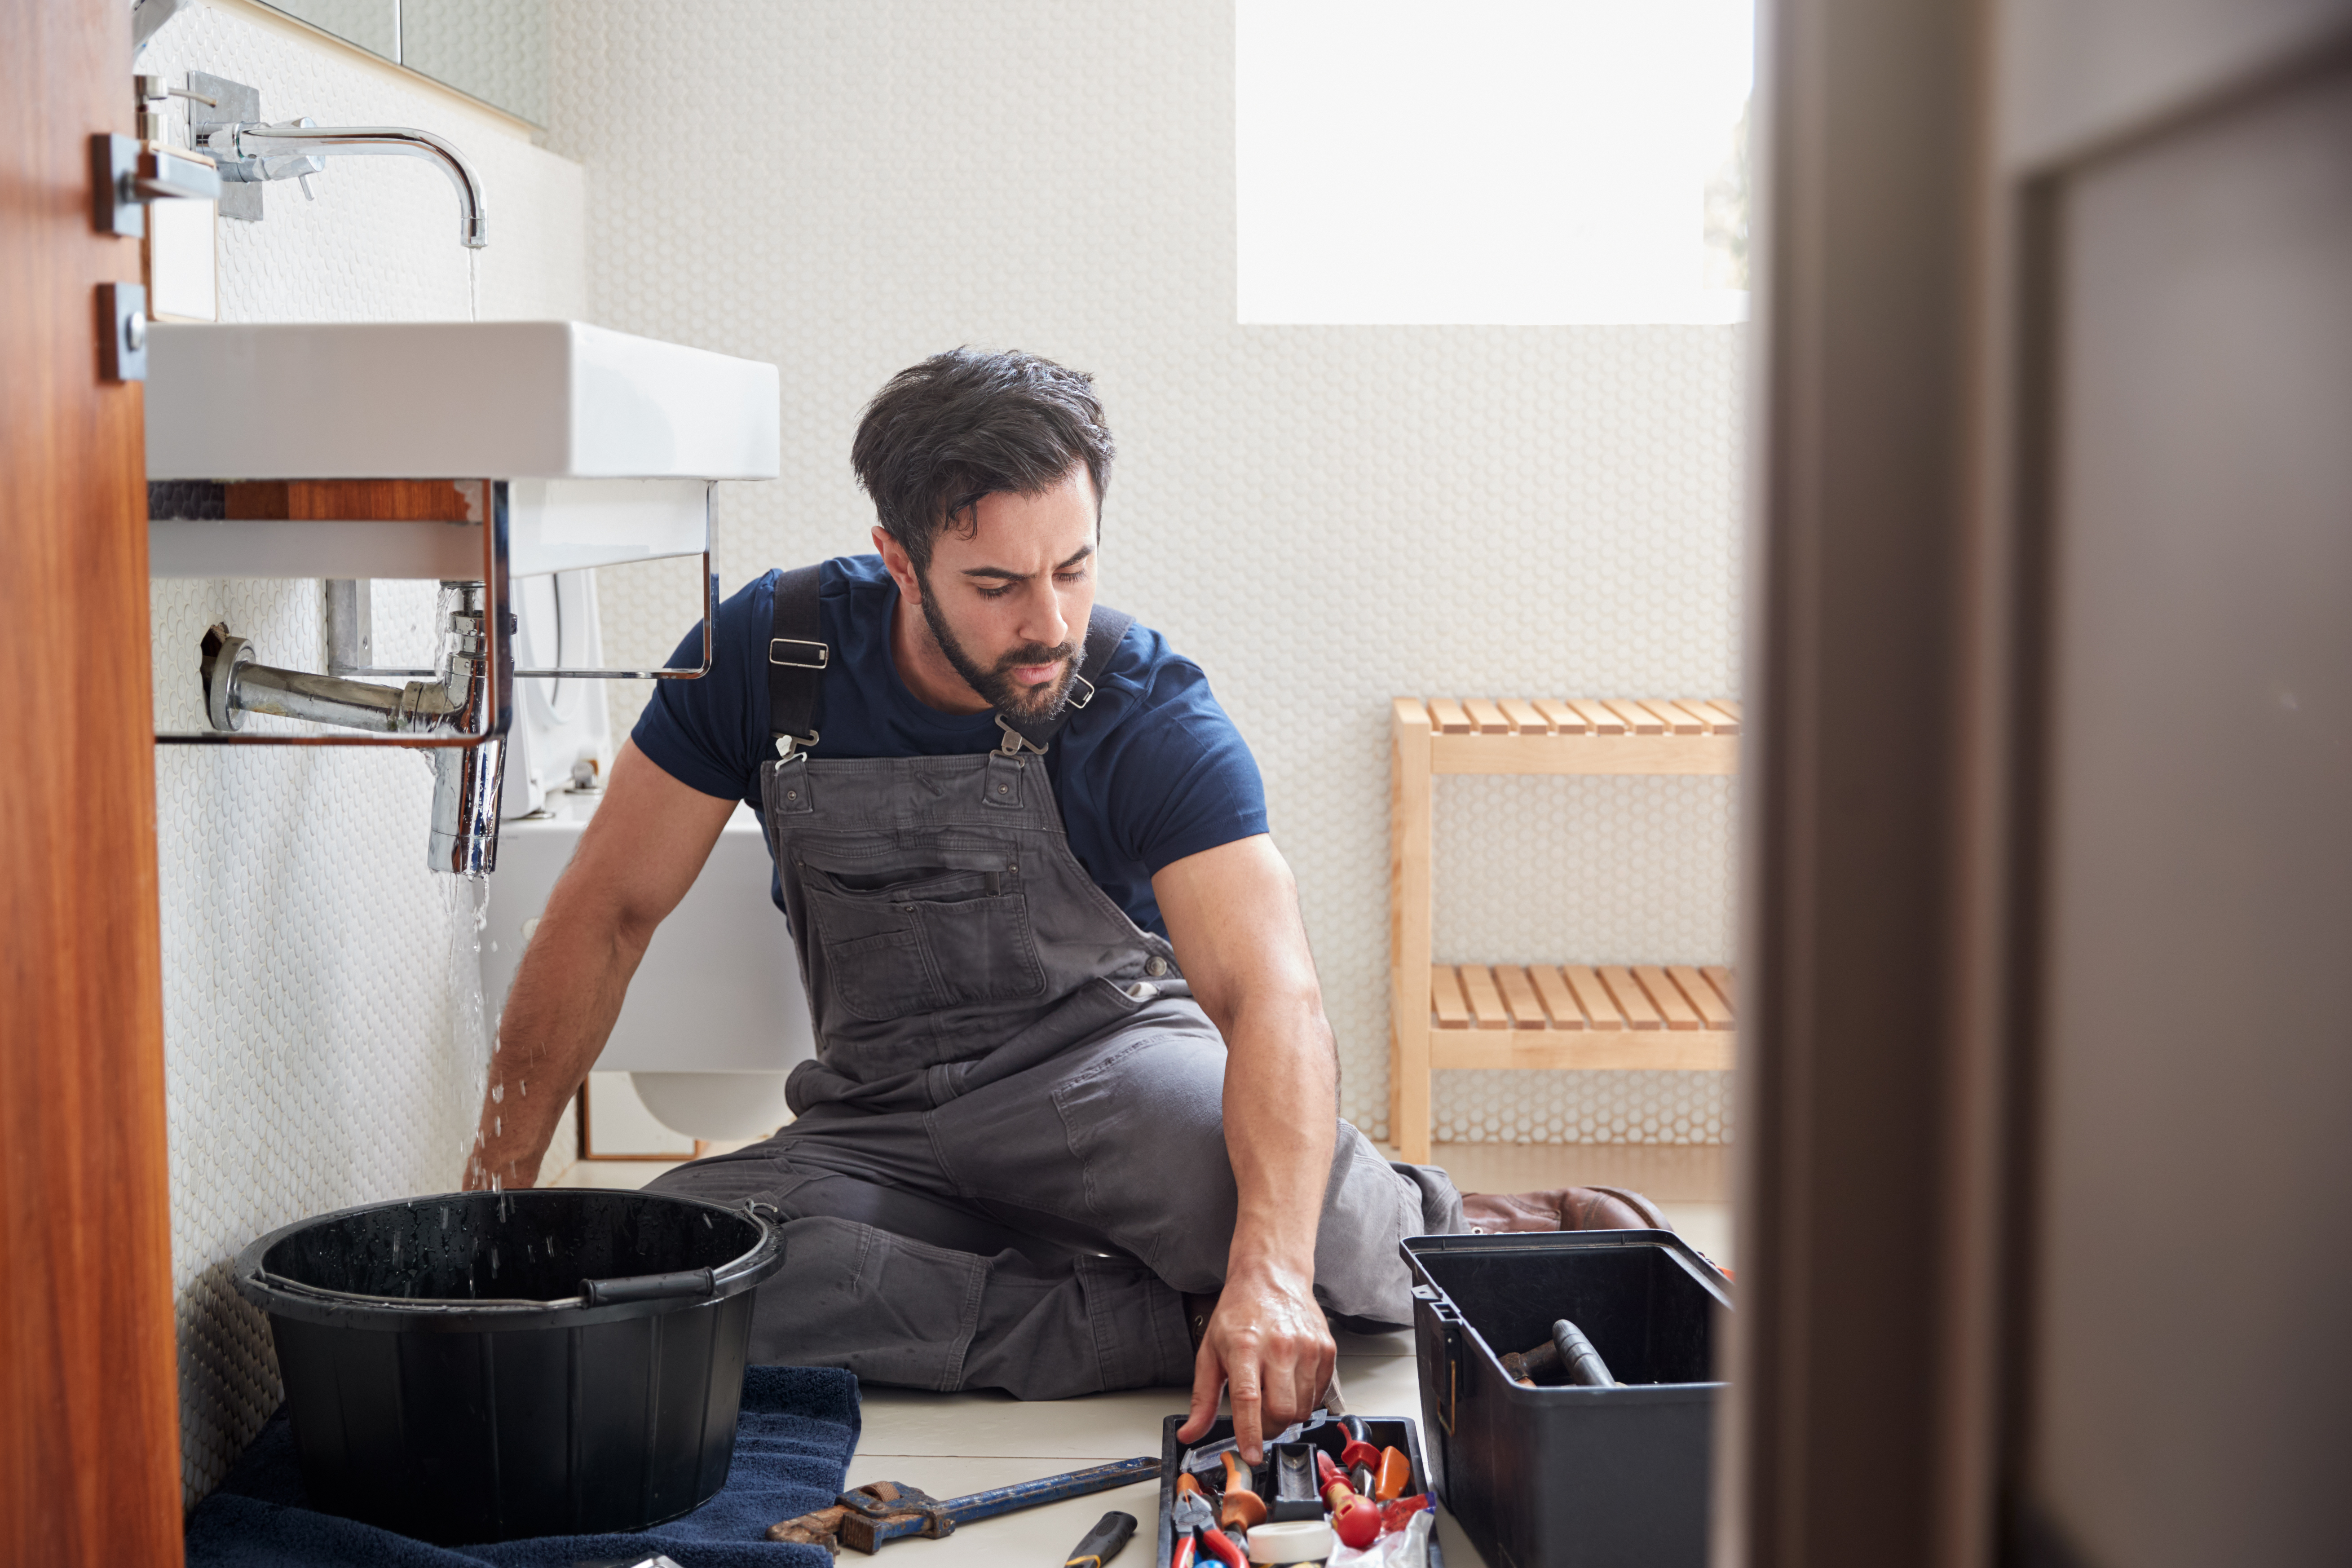 male-plumber-working-to-fix-leaking-sink-in-home-b-9ZH3FDD